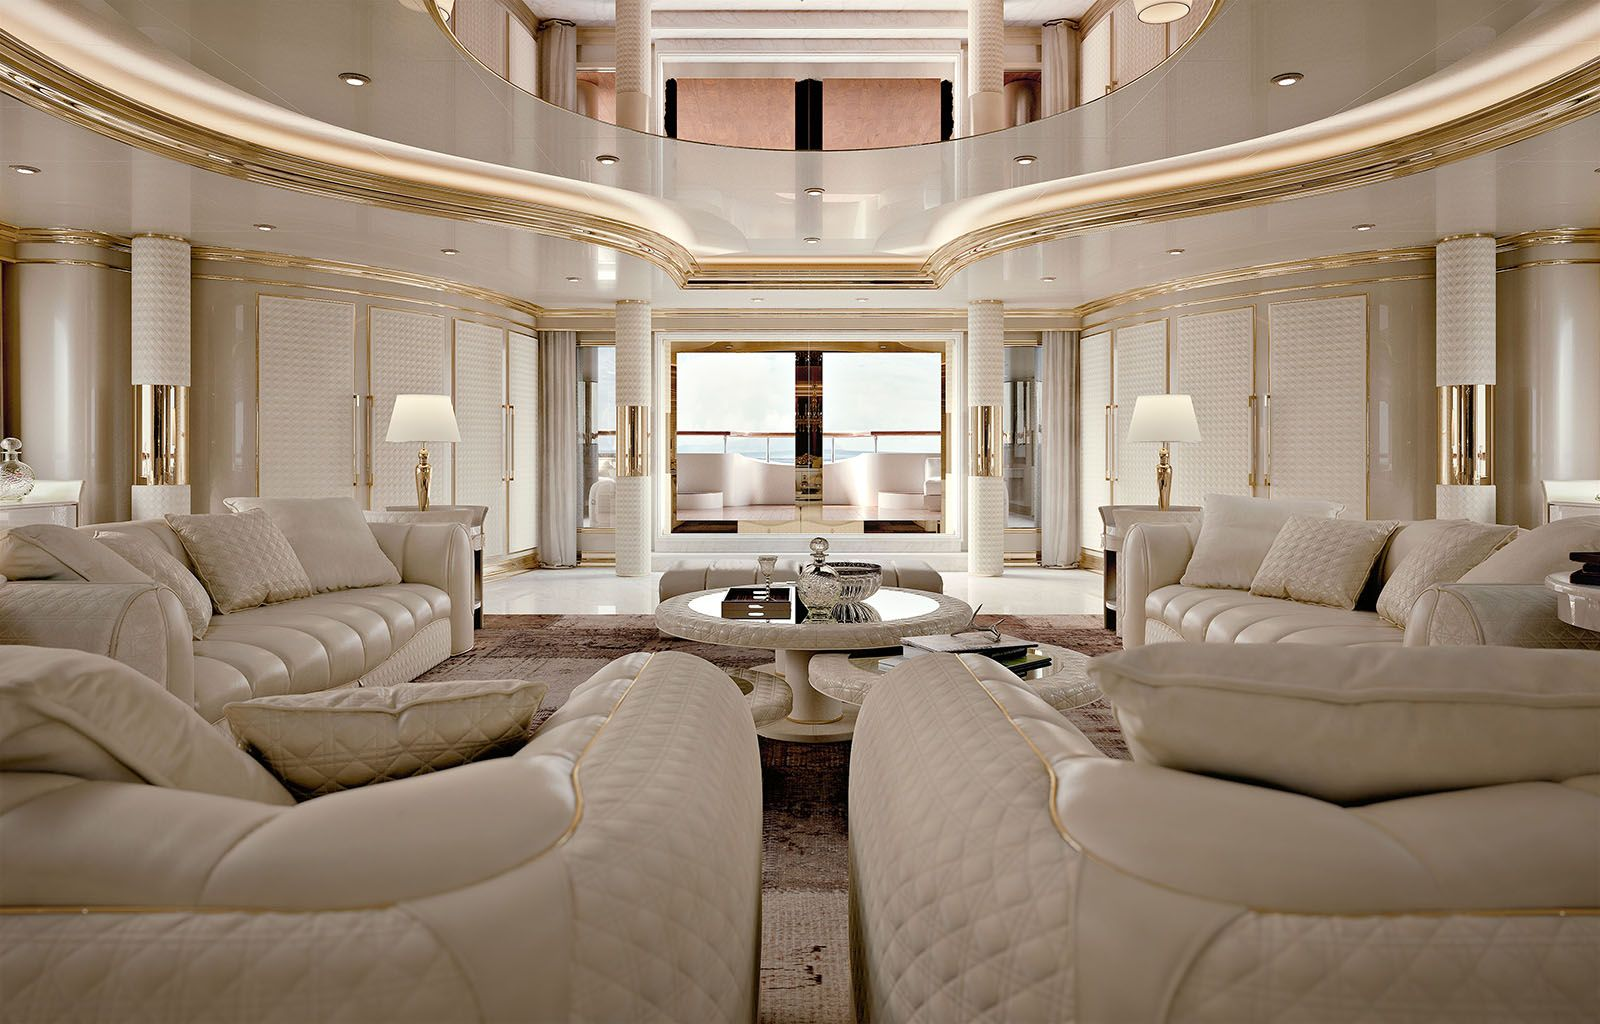 Caractere Collection www.turri.it Luxury yacht living room furniture